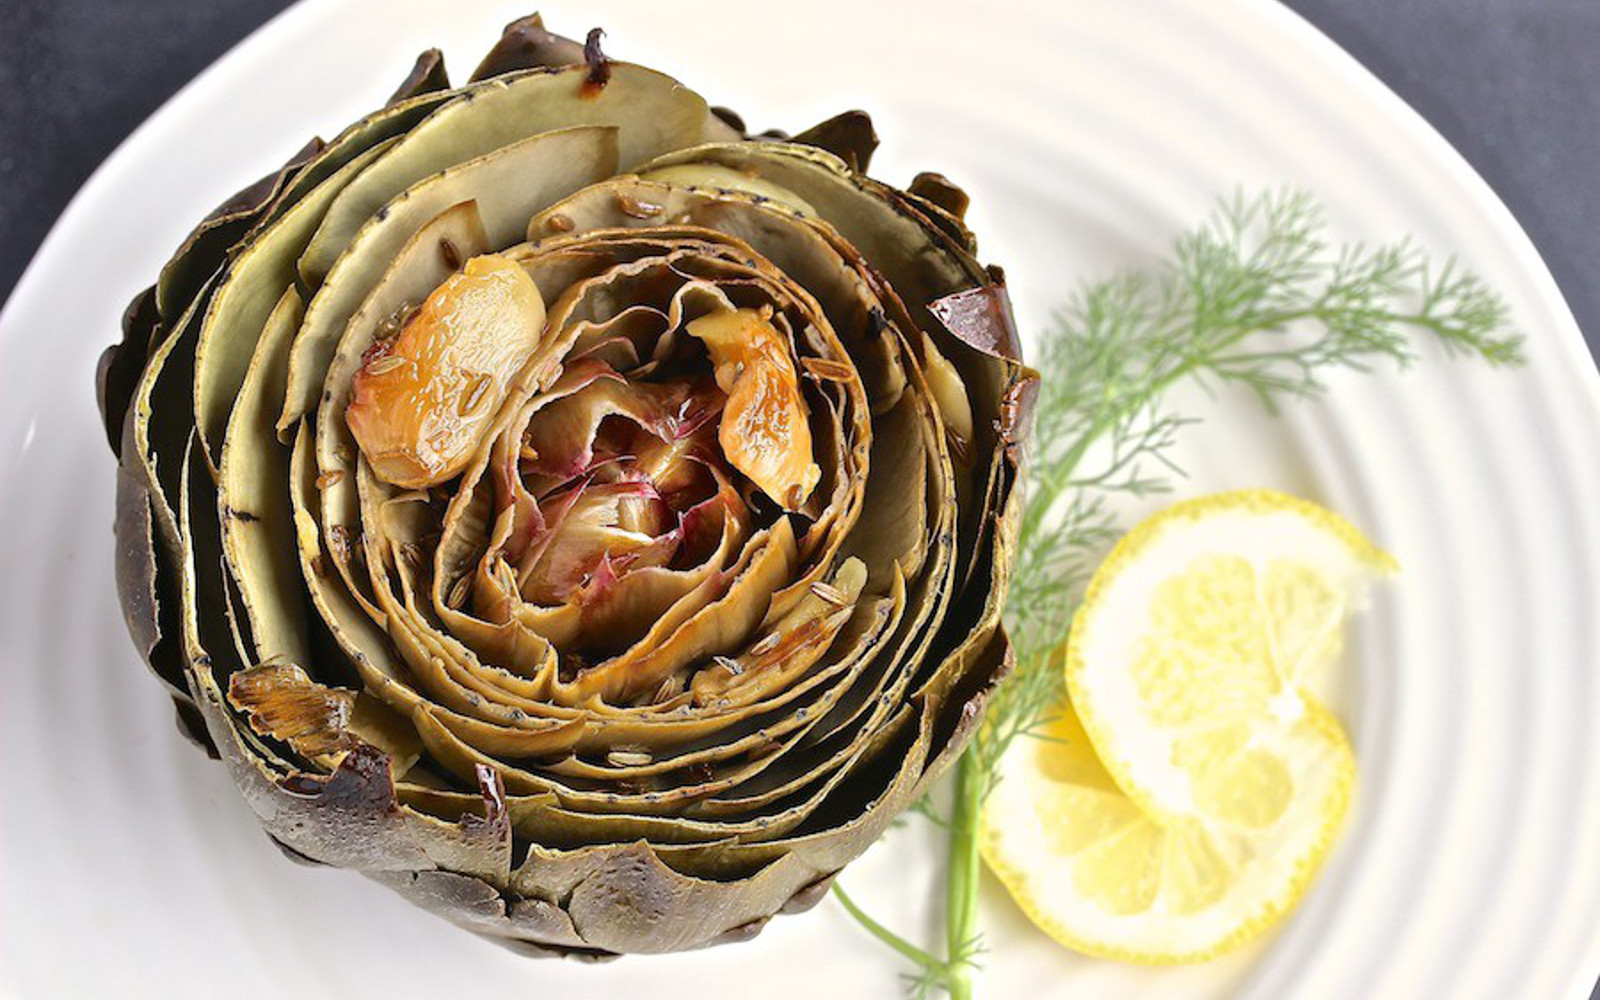 Roasted Artichoke With Garlic and Fennel